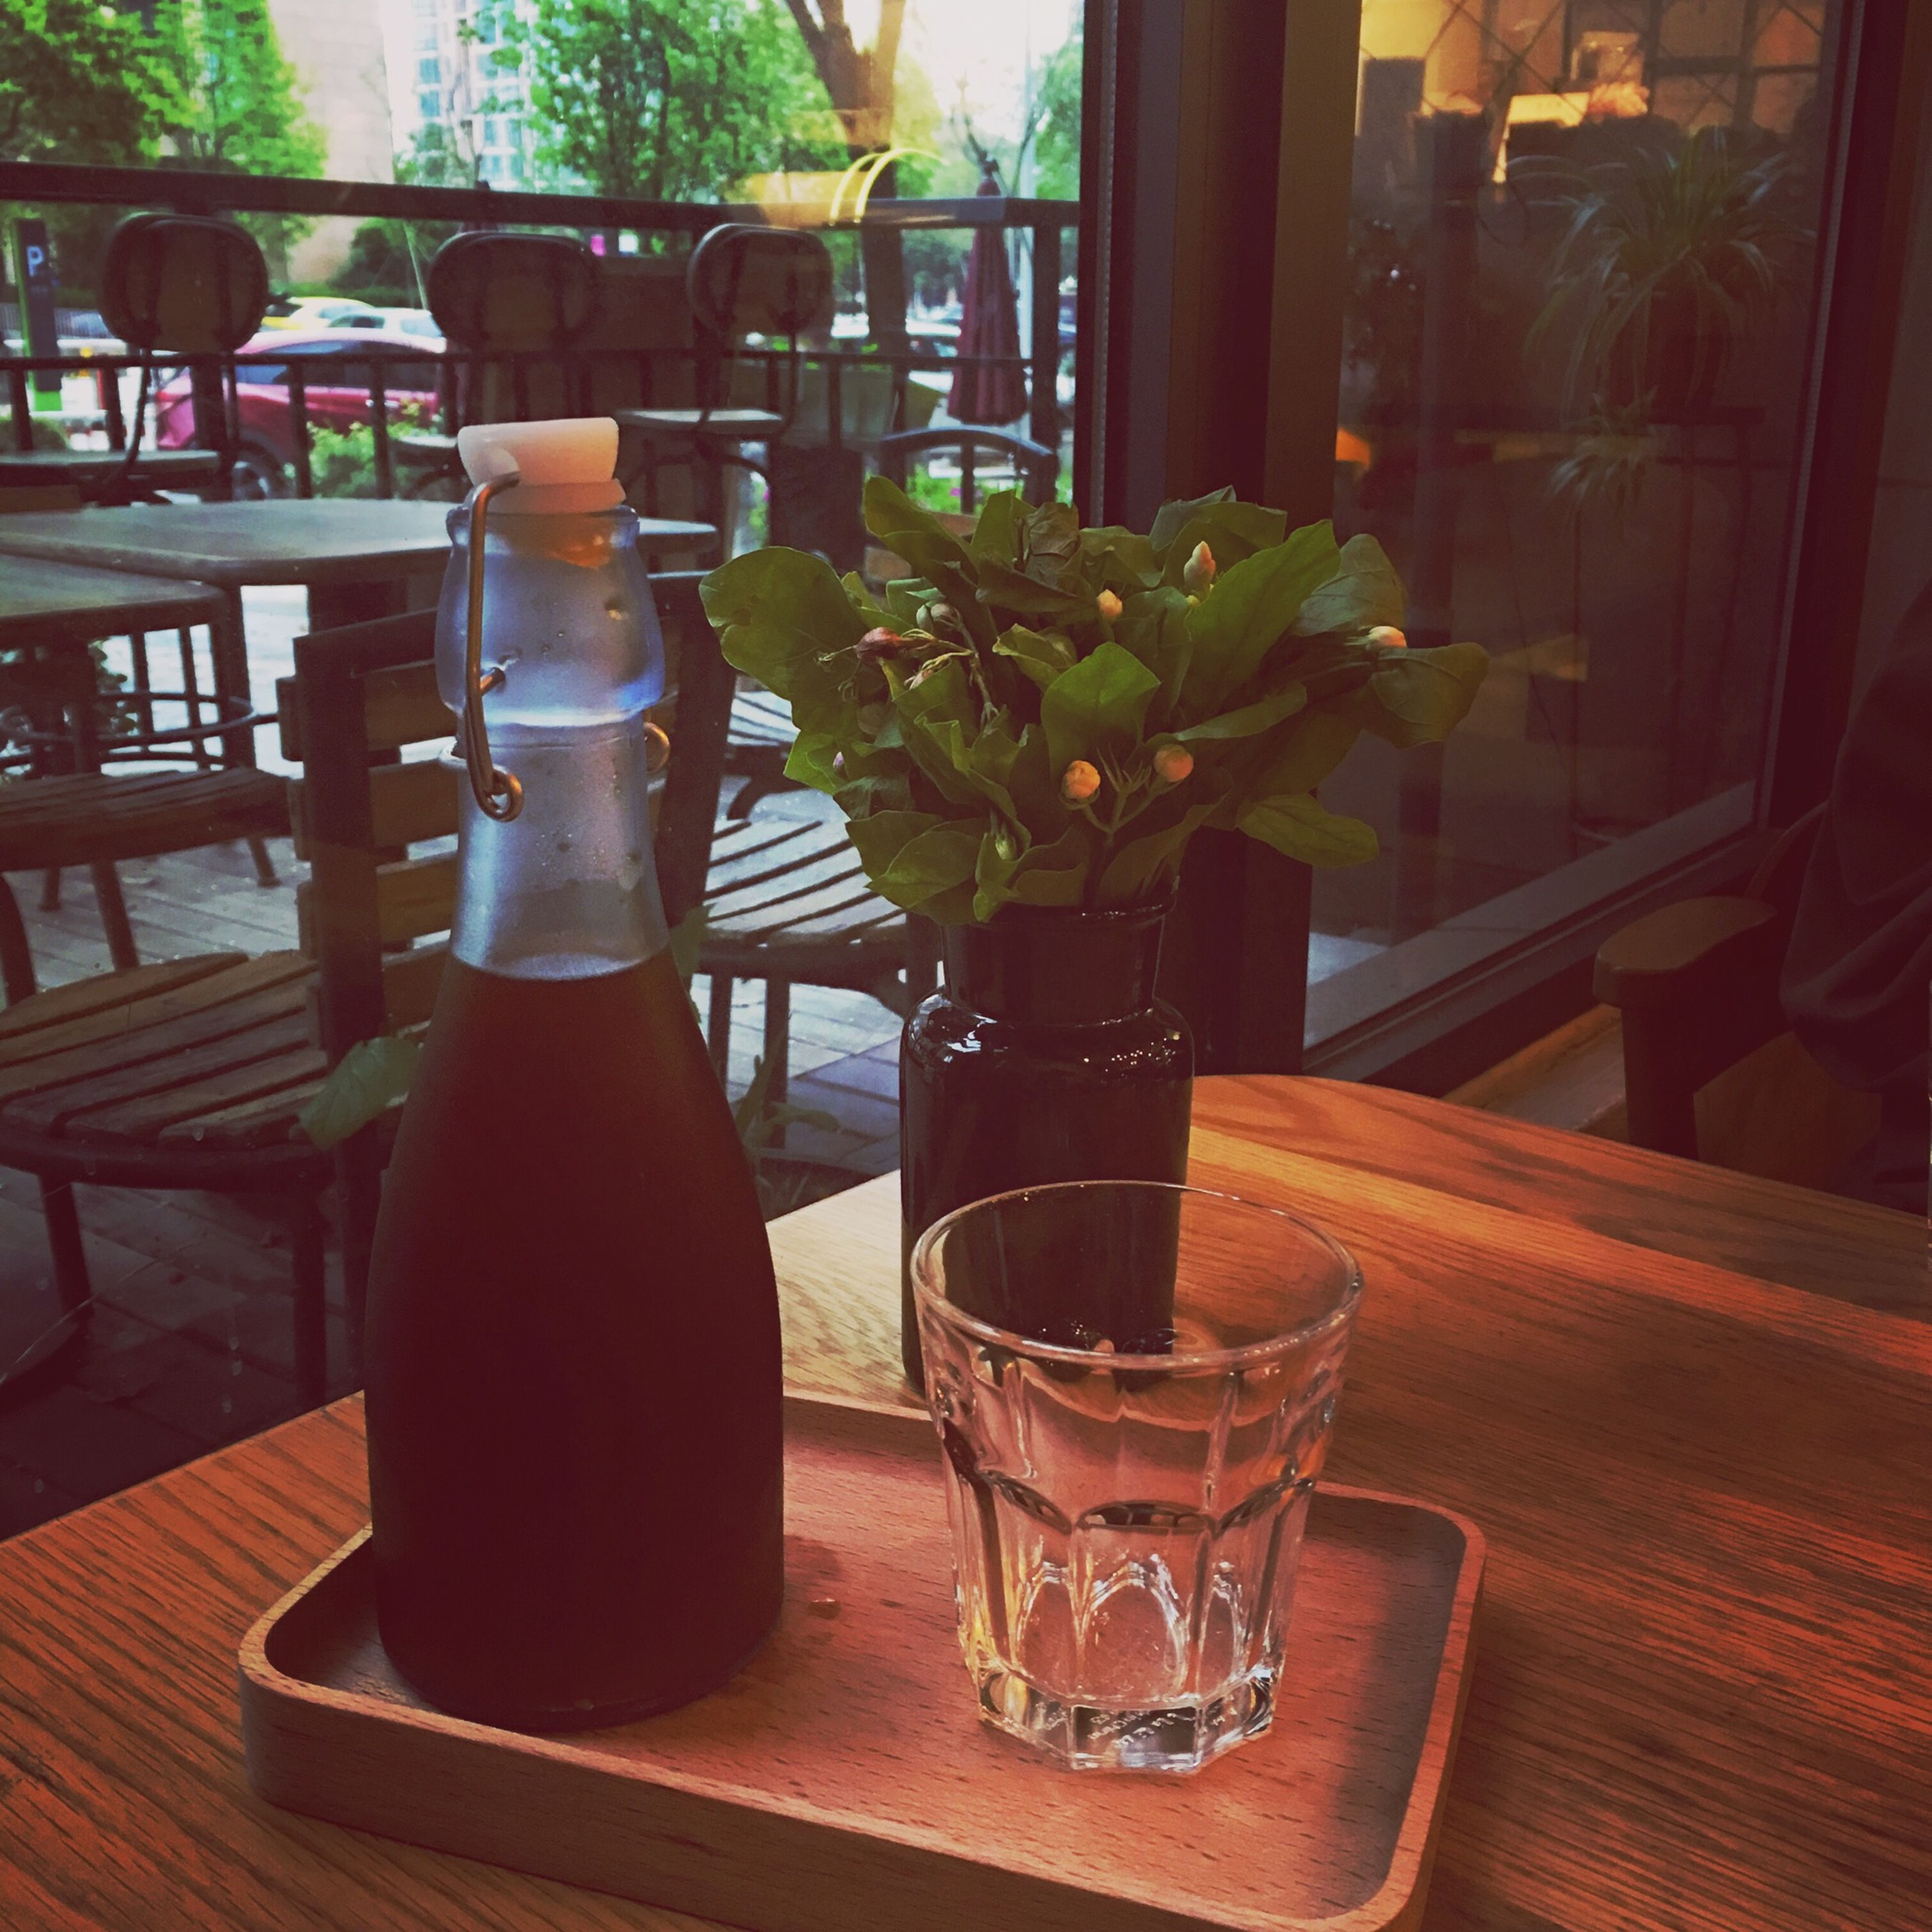 table, indoors, drink, food and drink, freshness, drinking glass, glass - material, chair, potted plant, restaurant, vase, refreshment, still life, wood - material, glass, window, transparent, home interior, sunlight, close-up